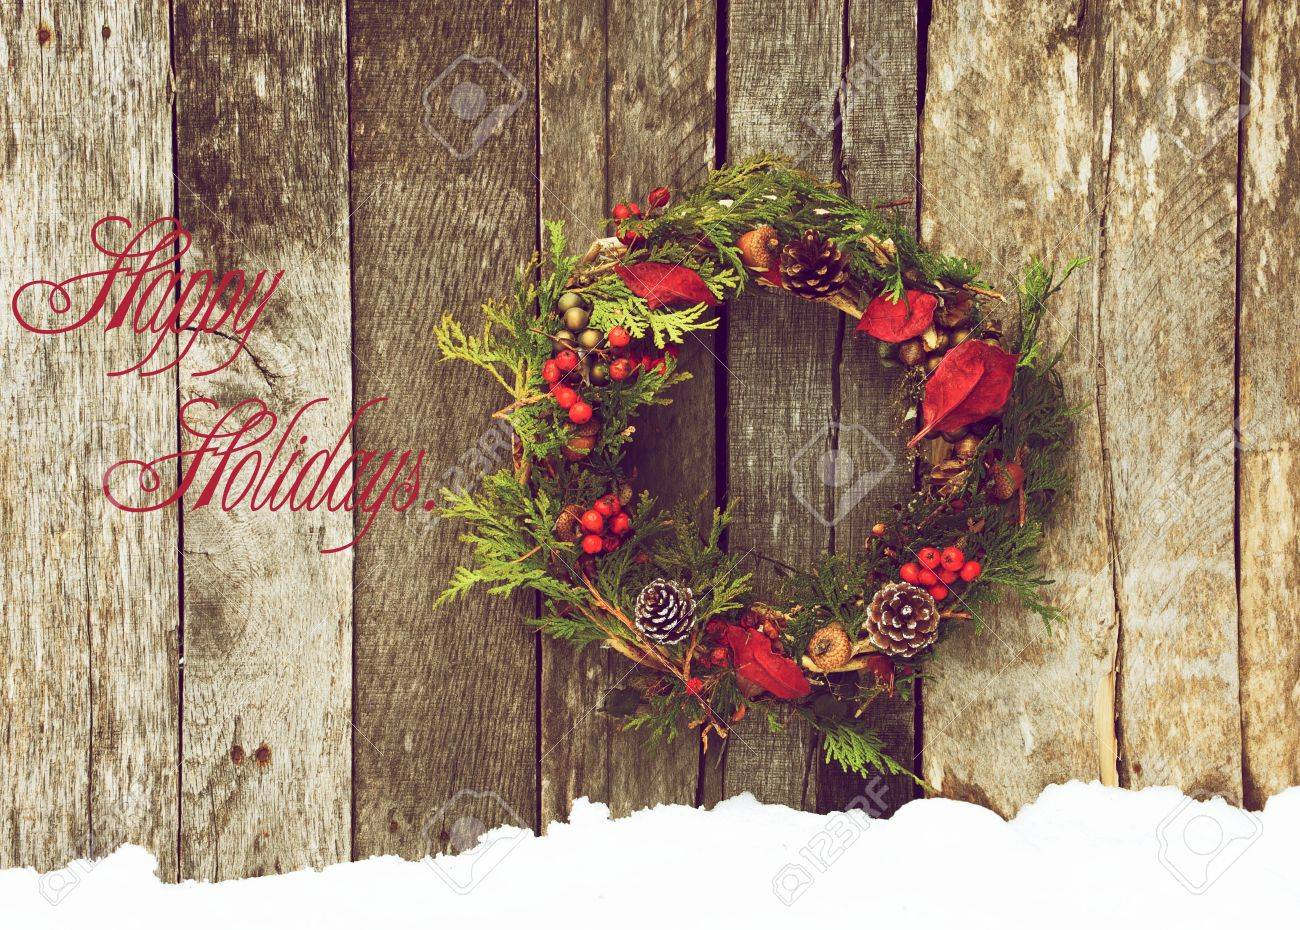 Christmas card design featuring a home made christmas wreath with natural decorations hanging on a rustic wooden wall with text  Happy Holidays Stock Photo - 15273307